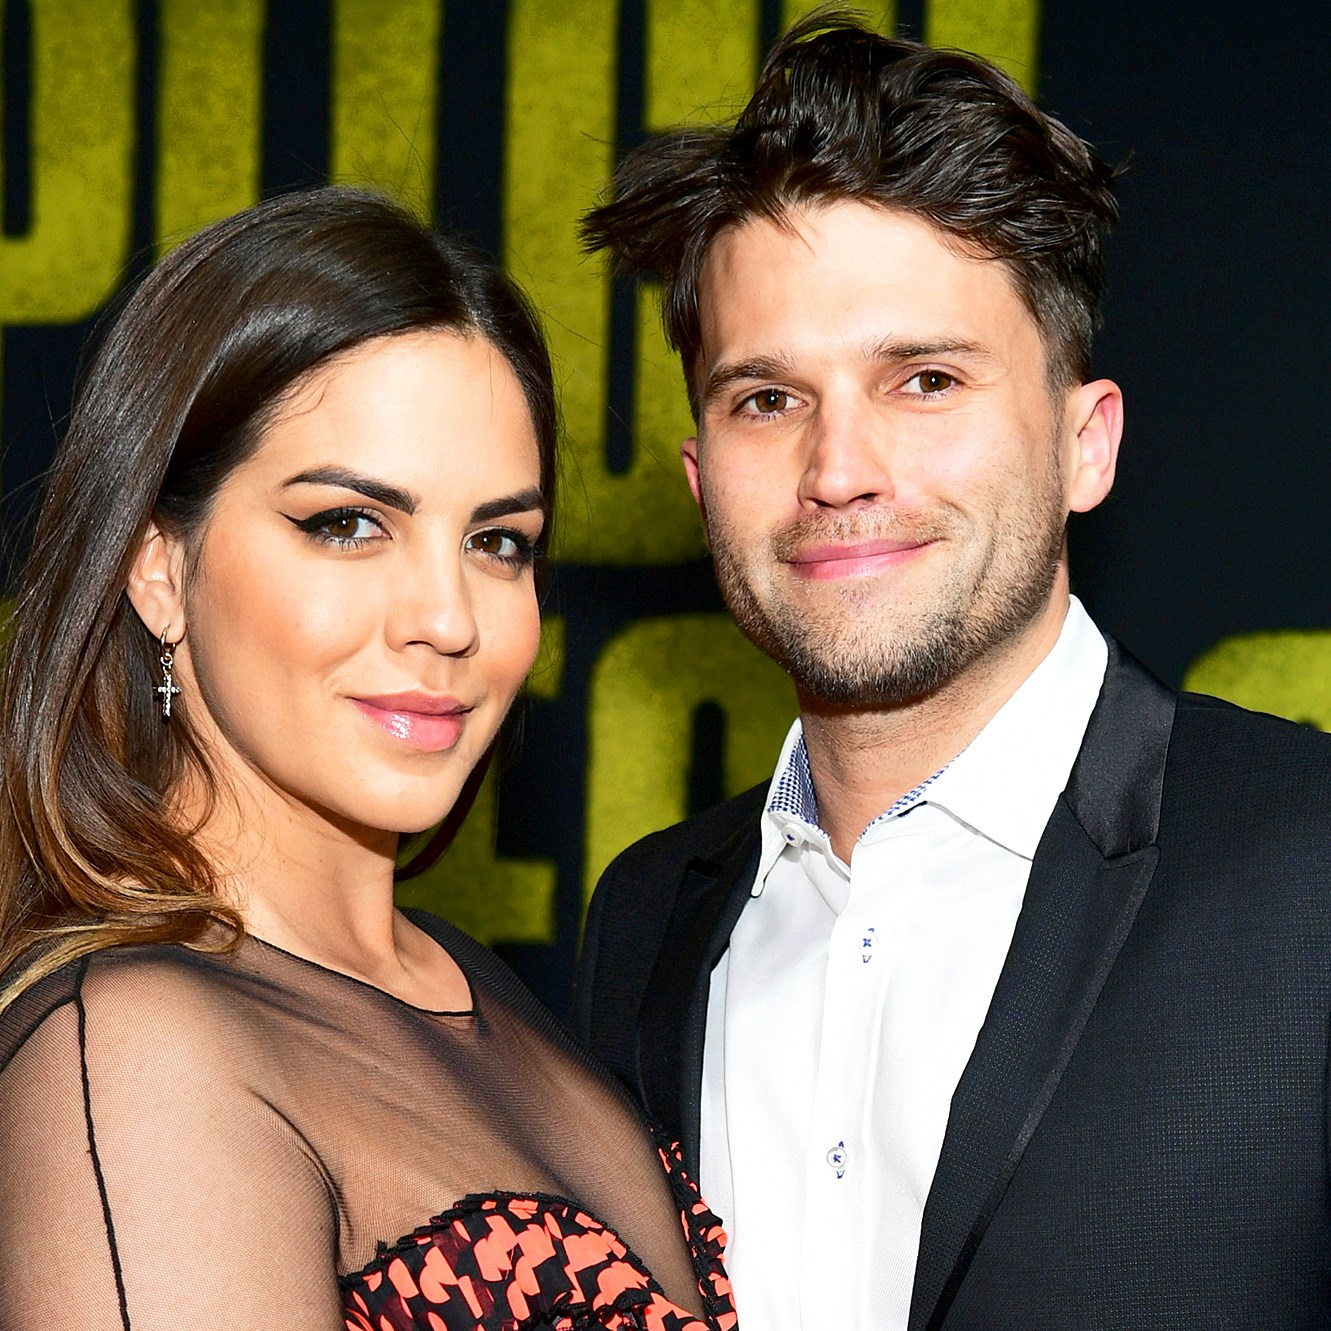 """Katie Maloney and Tom Schwartz attend the premiere of Universal Pictures' """"Pitch Perfect 3"""" at Dolby Theatre on December 12, 2017 in Hollywood, California."""